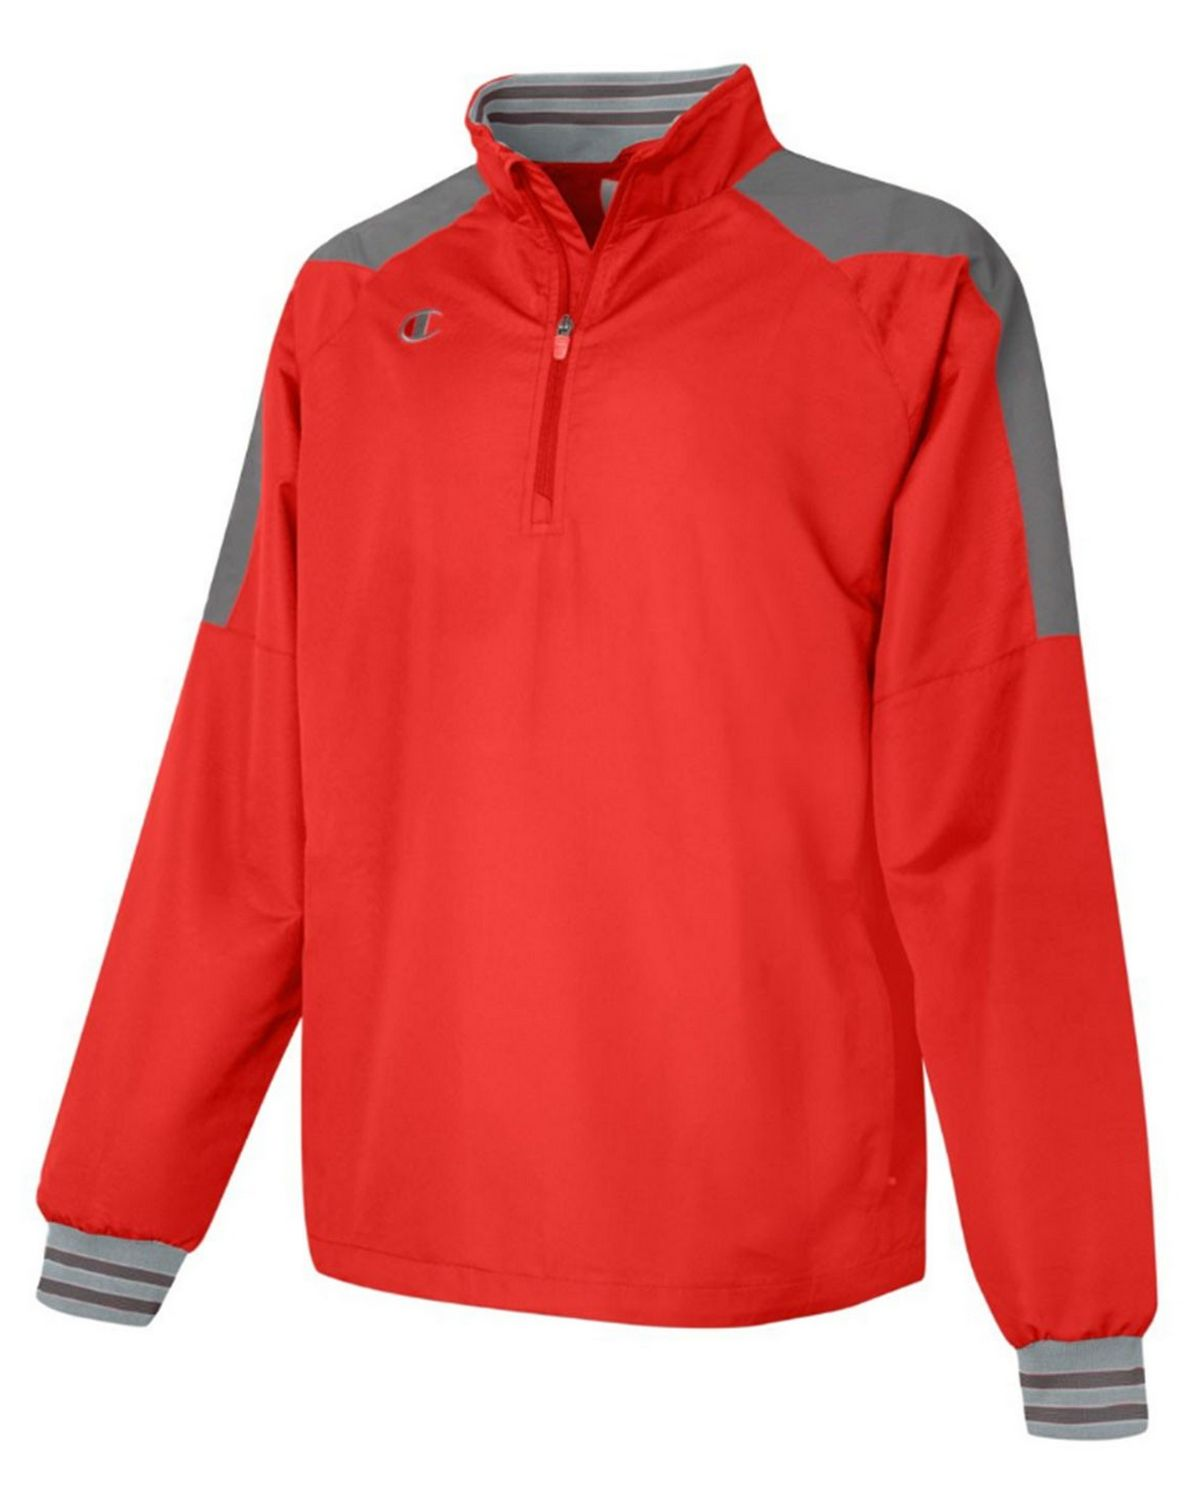 Champion V072 Mens 1/2 Zip Jacket - Scarlet/Dark Platinum Gray - XL V072